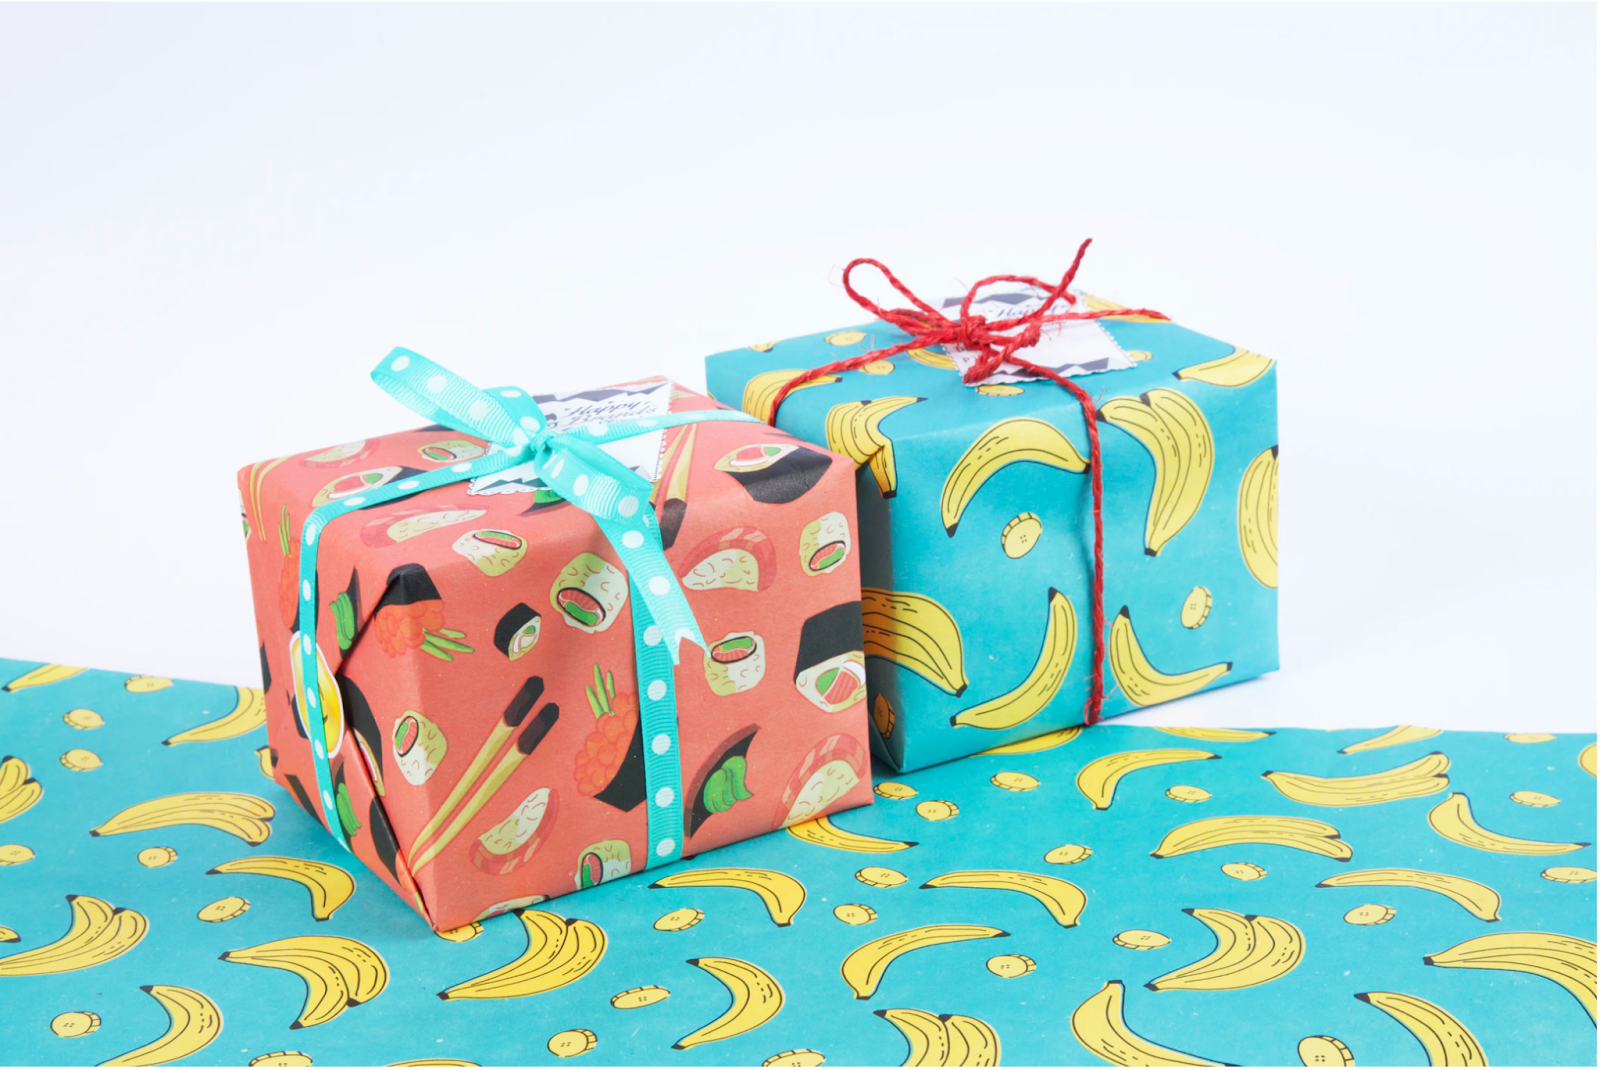 two gifts wrapped in sushi and banana-themed wrapping paper